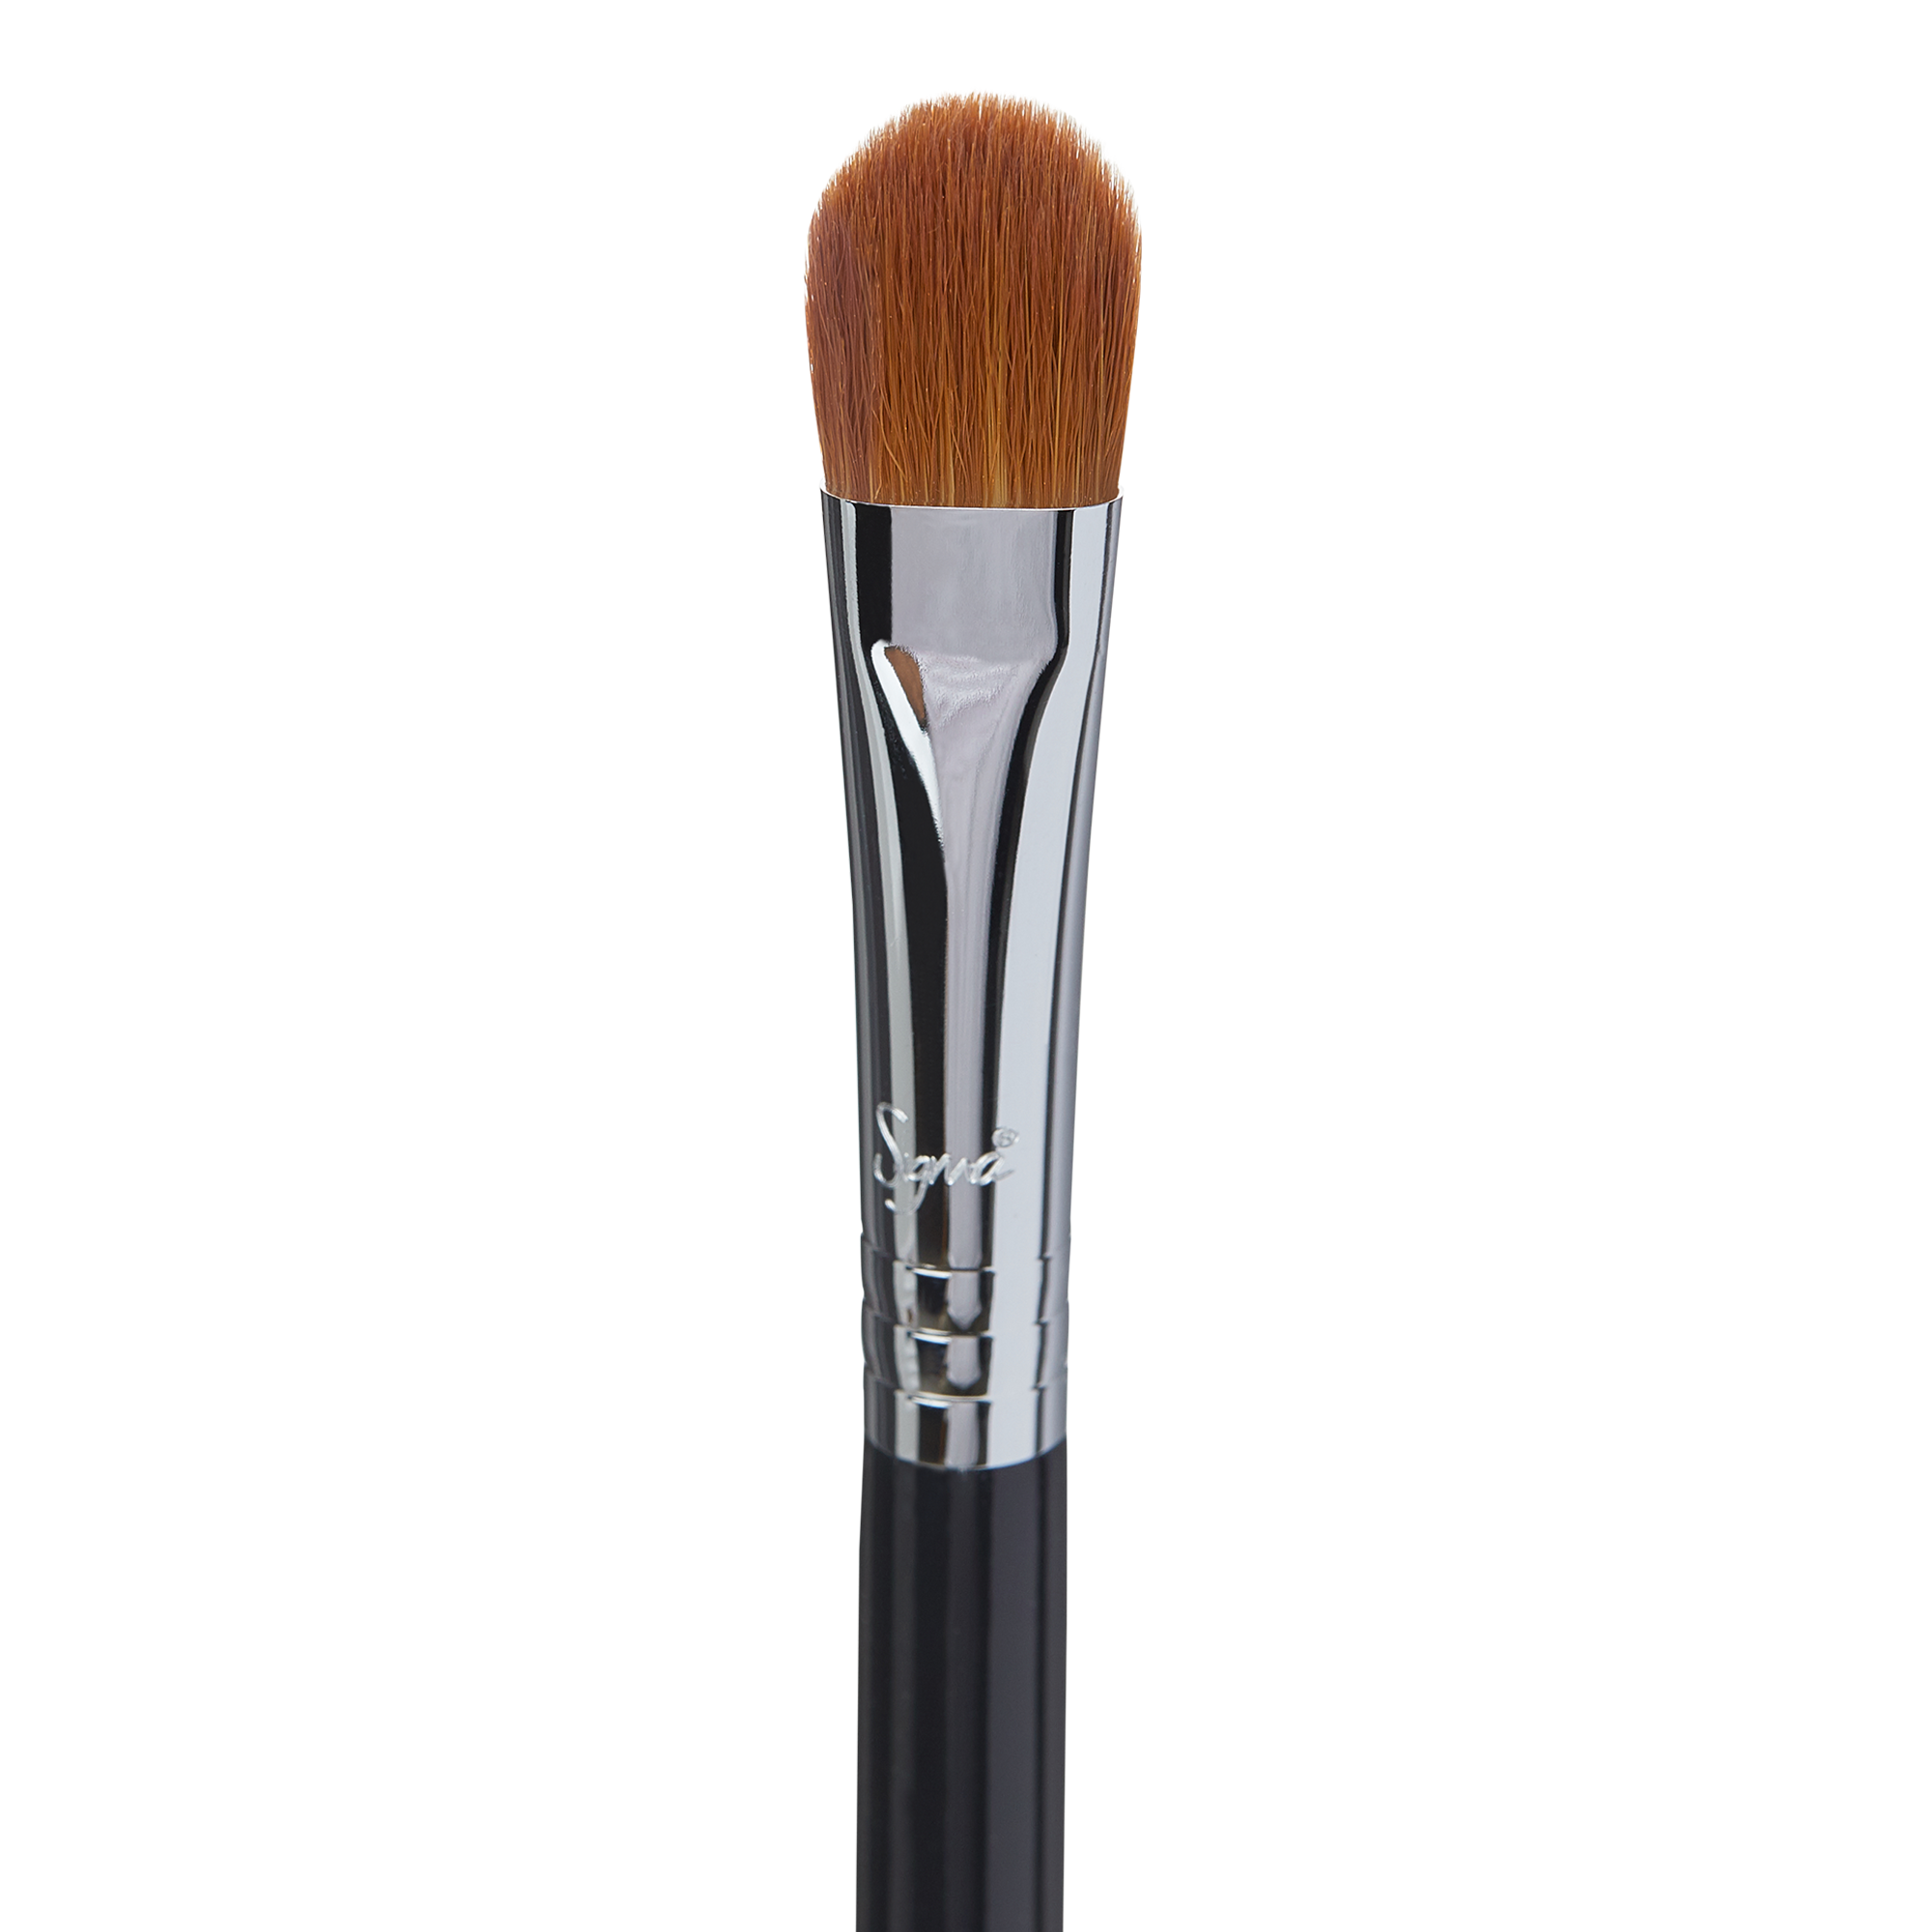 E60 Large Shader Brush